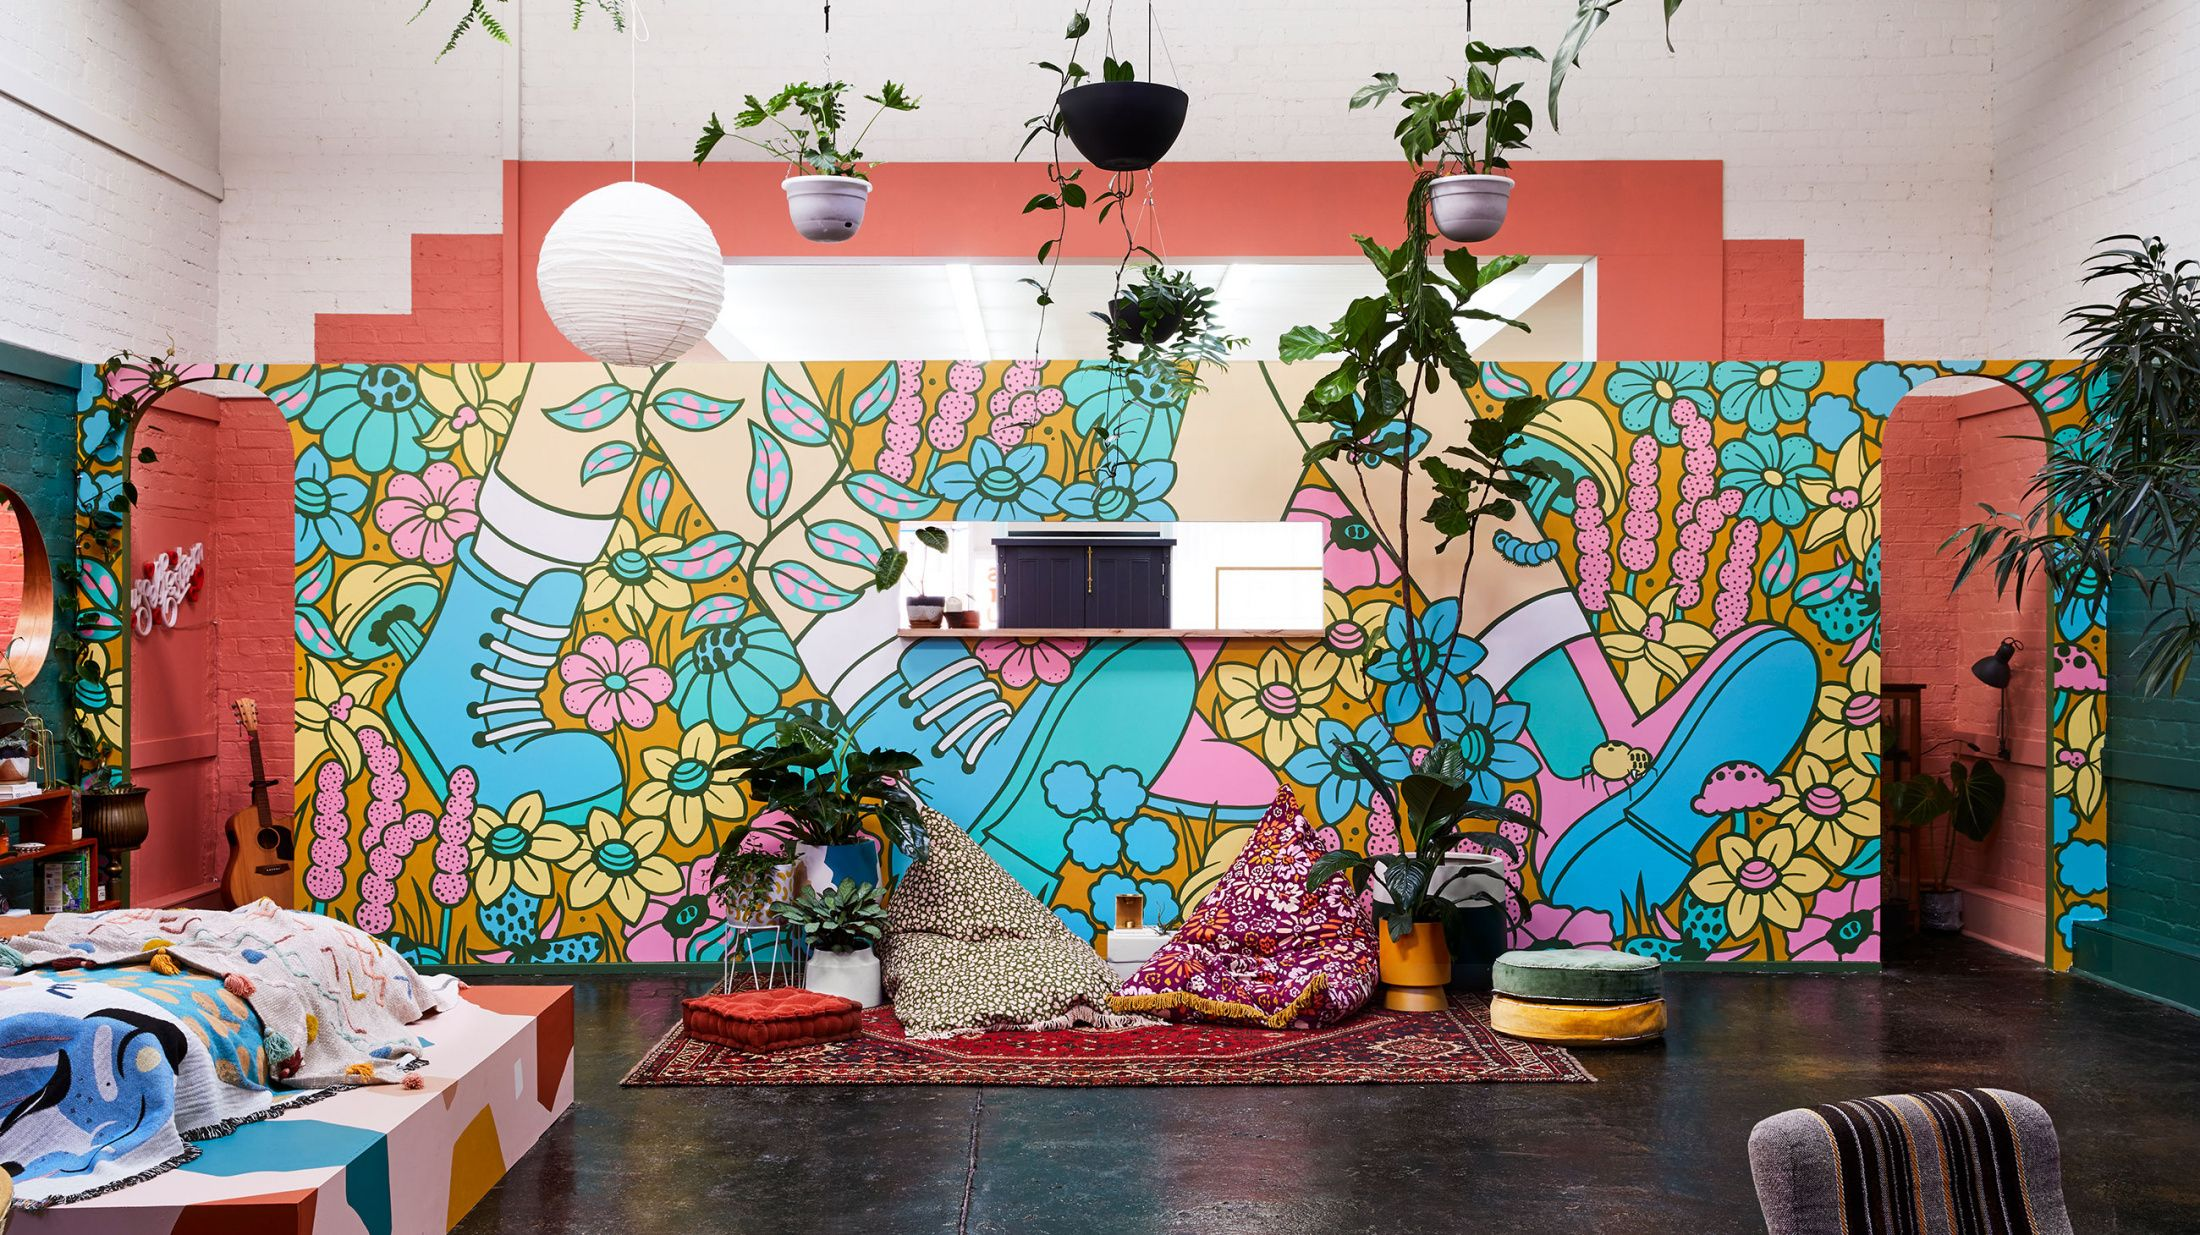 A collingwood warehouse transformed with paint plants in